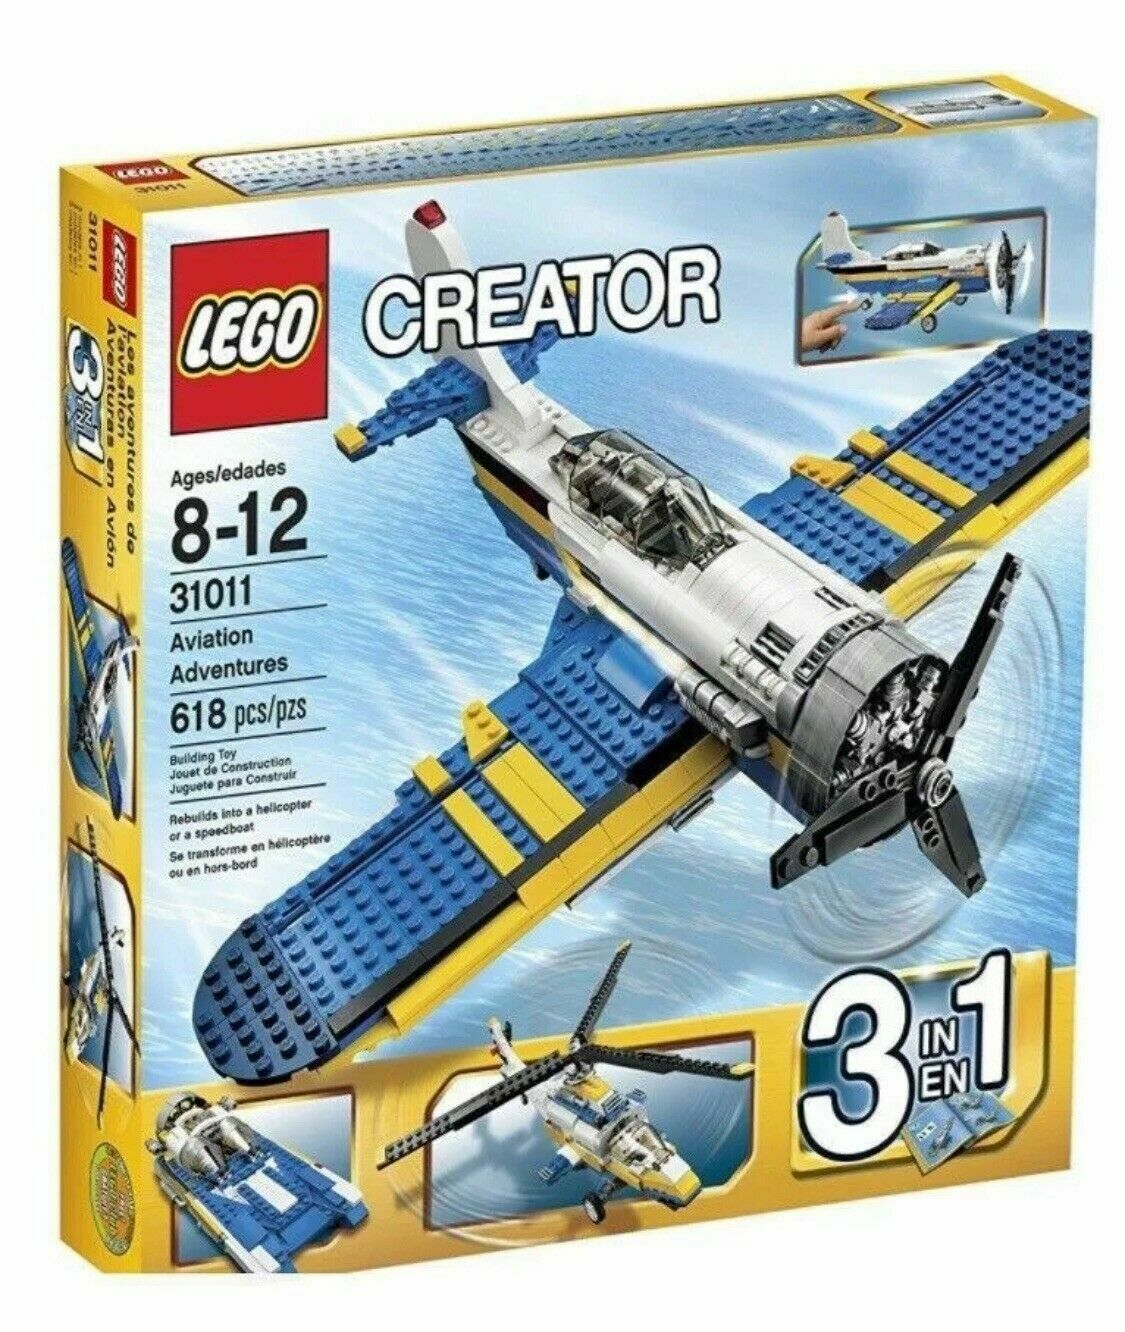 LEGO Creator 31011 Aviation Adventure Air Crafts 3 in 1 Set.  NEW IN BOX